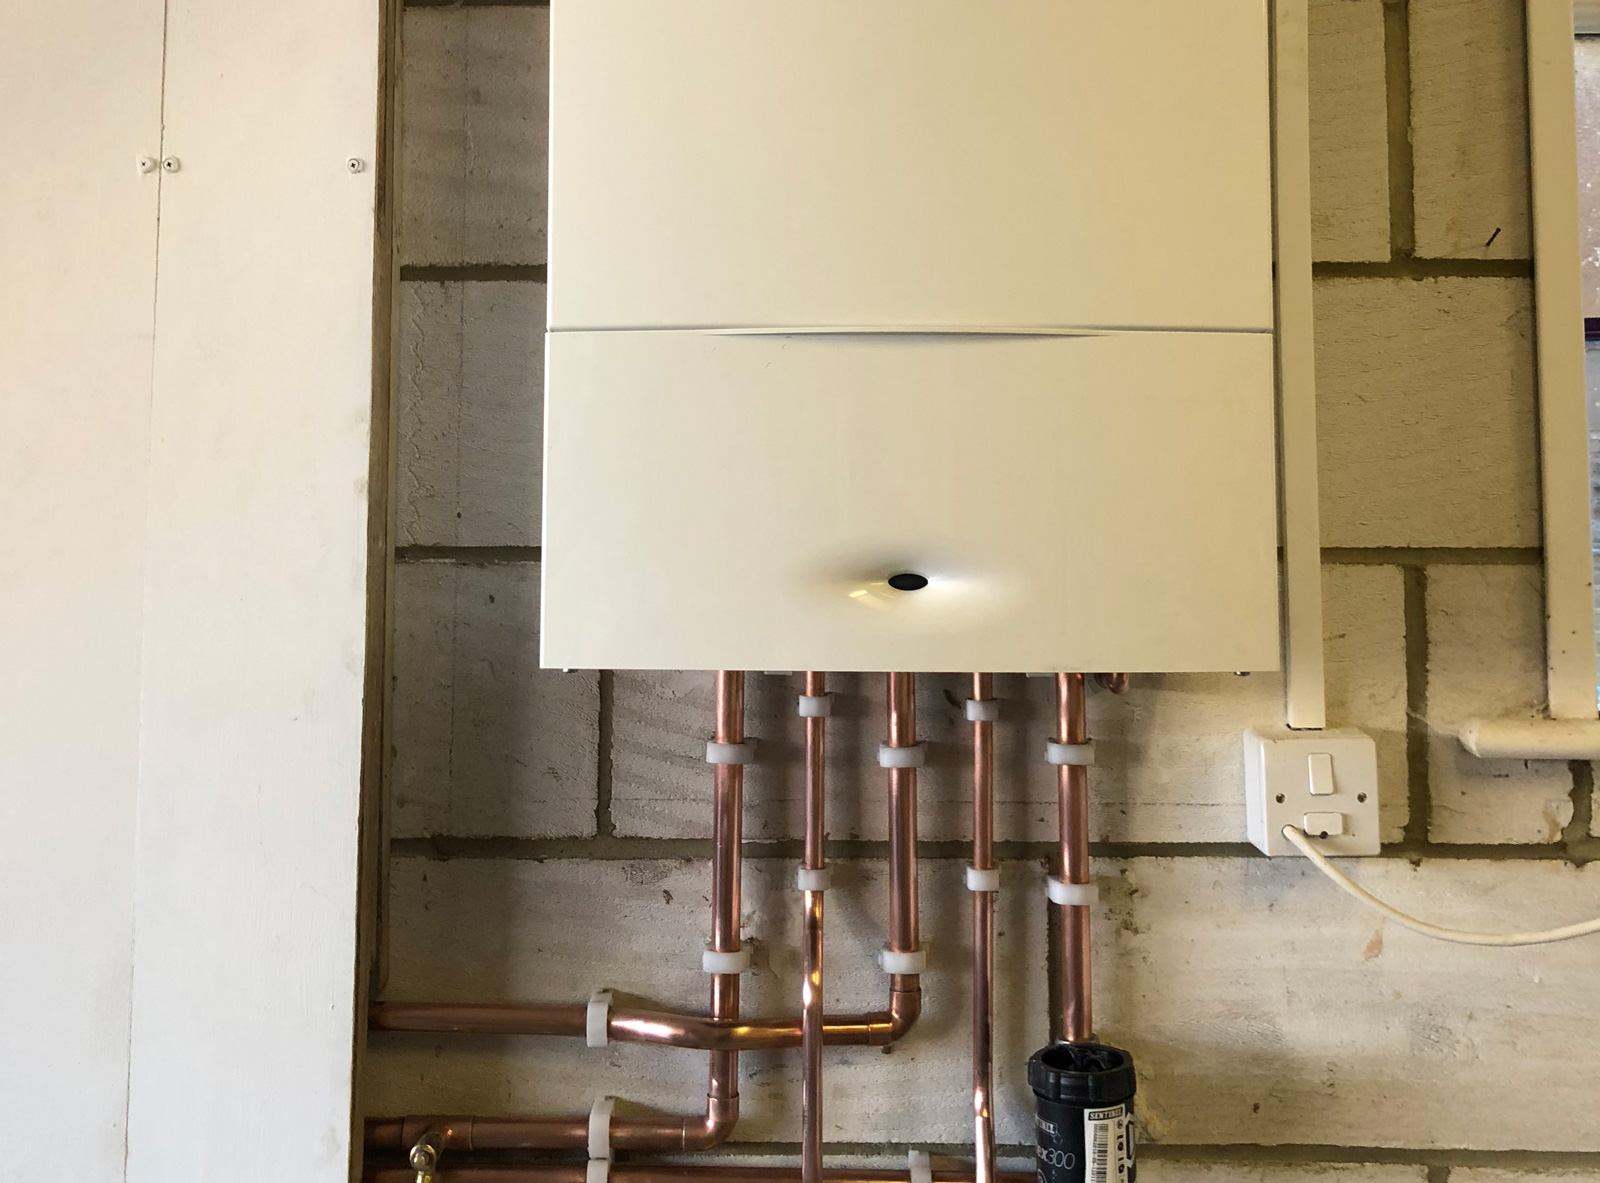 https://tlbheating.co.uk/wp-content/uploads/2019/06/boilers-2.jpg